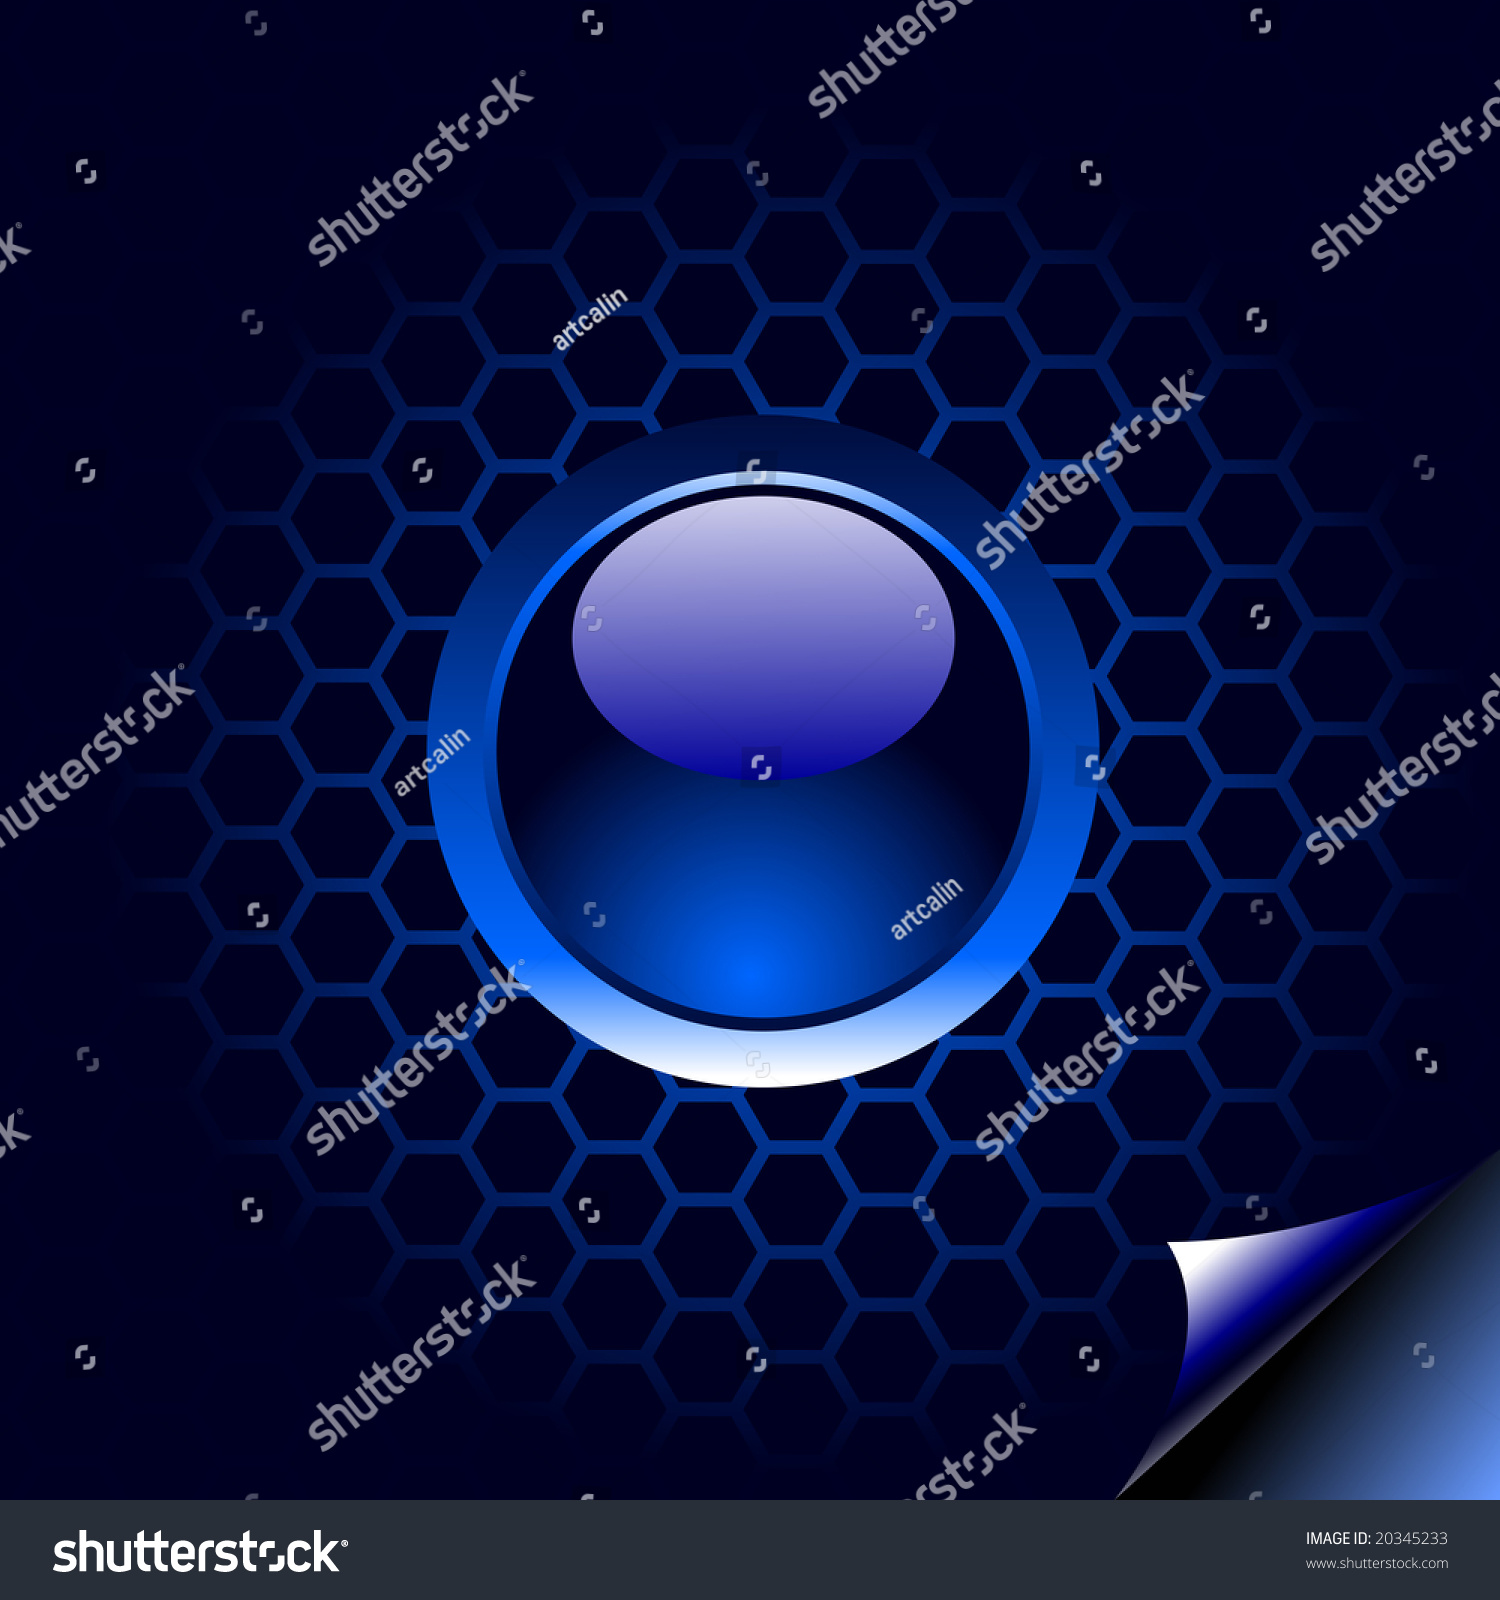 Tech Ablue Glowing Ring Png